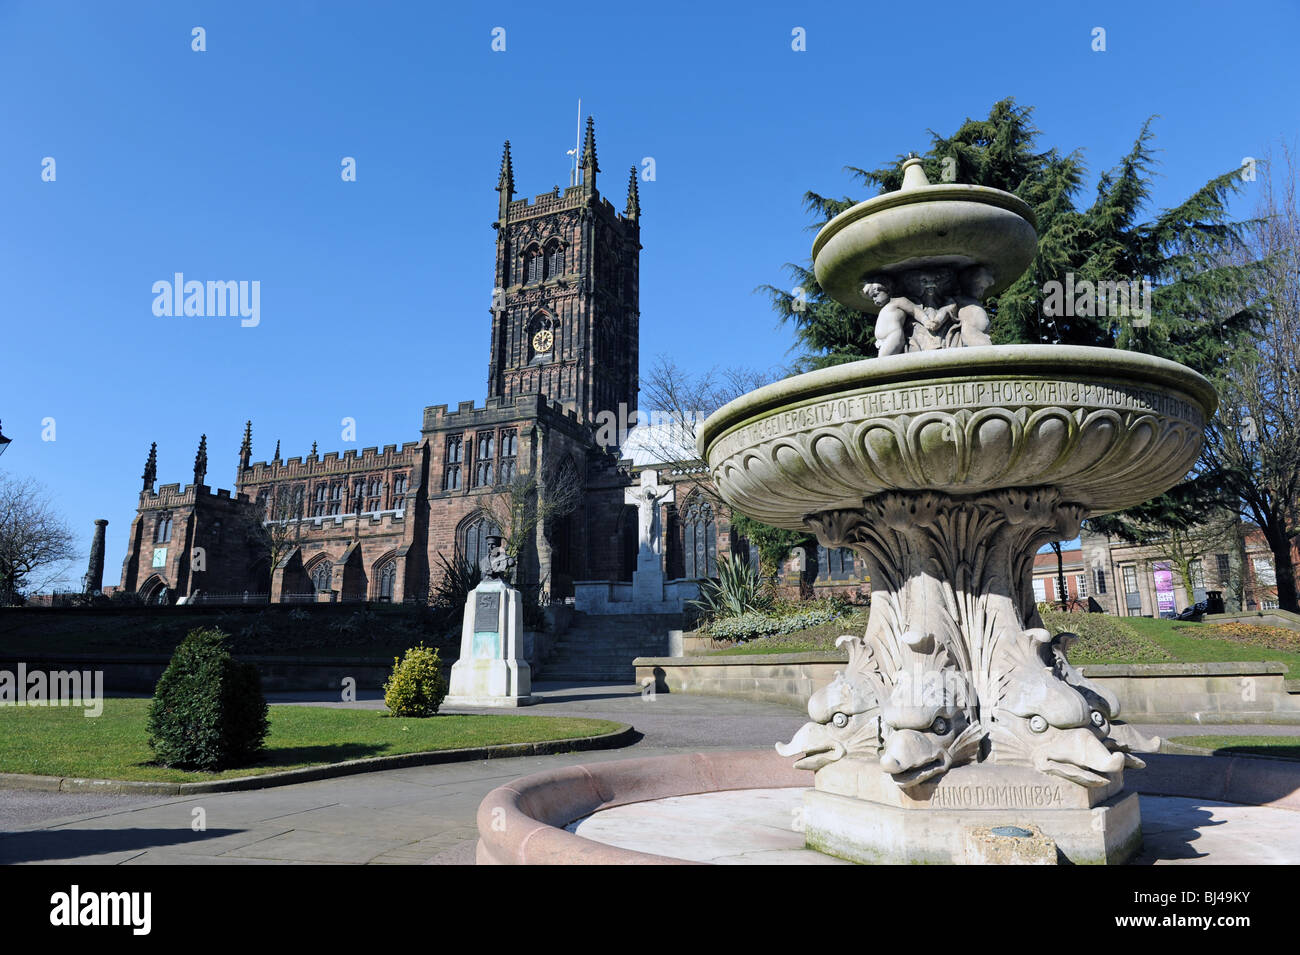 St Peters Church and gardens Wolverhampton England Uk - Stock Image